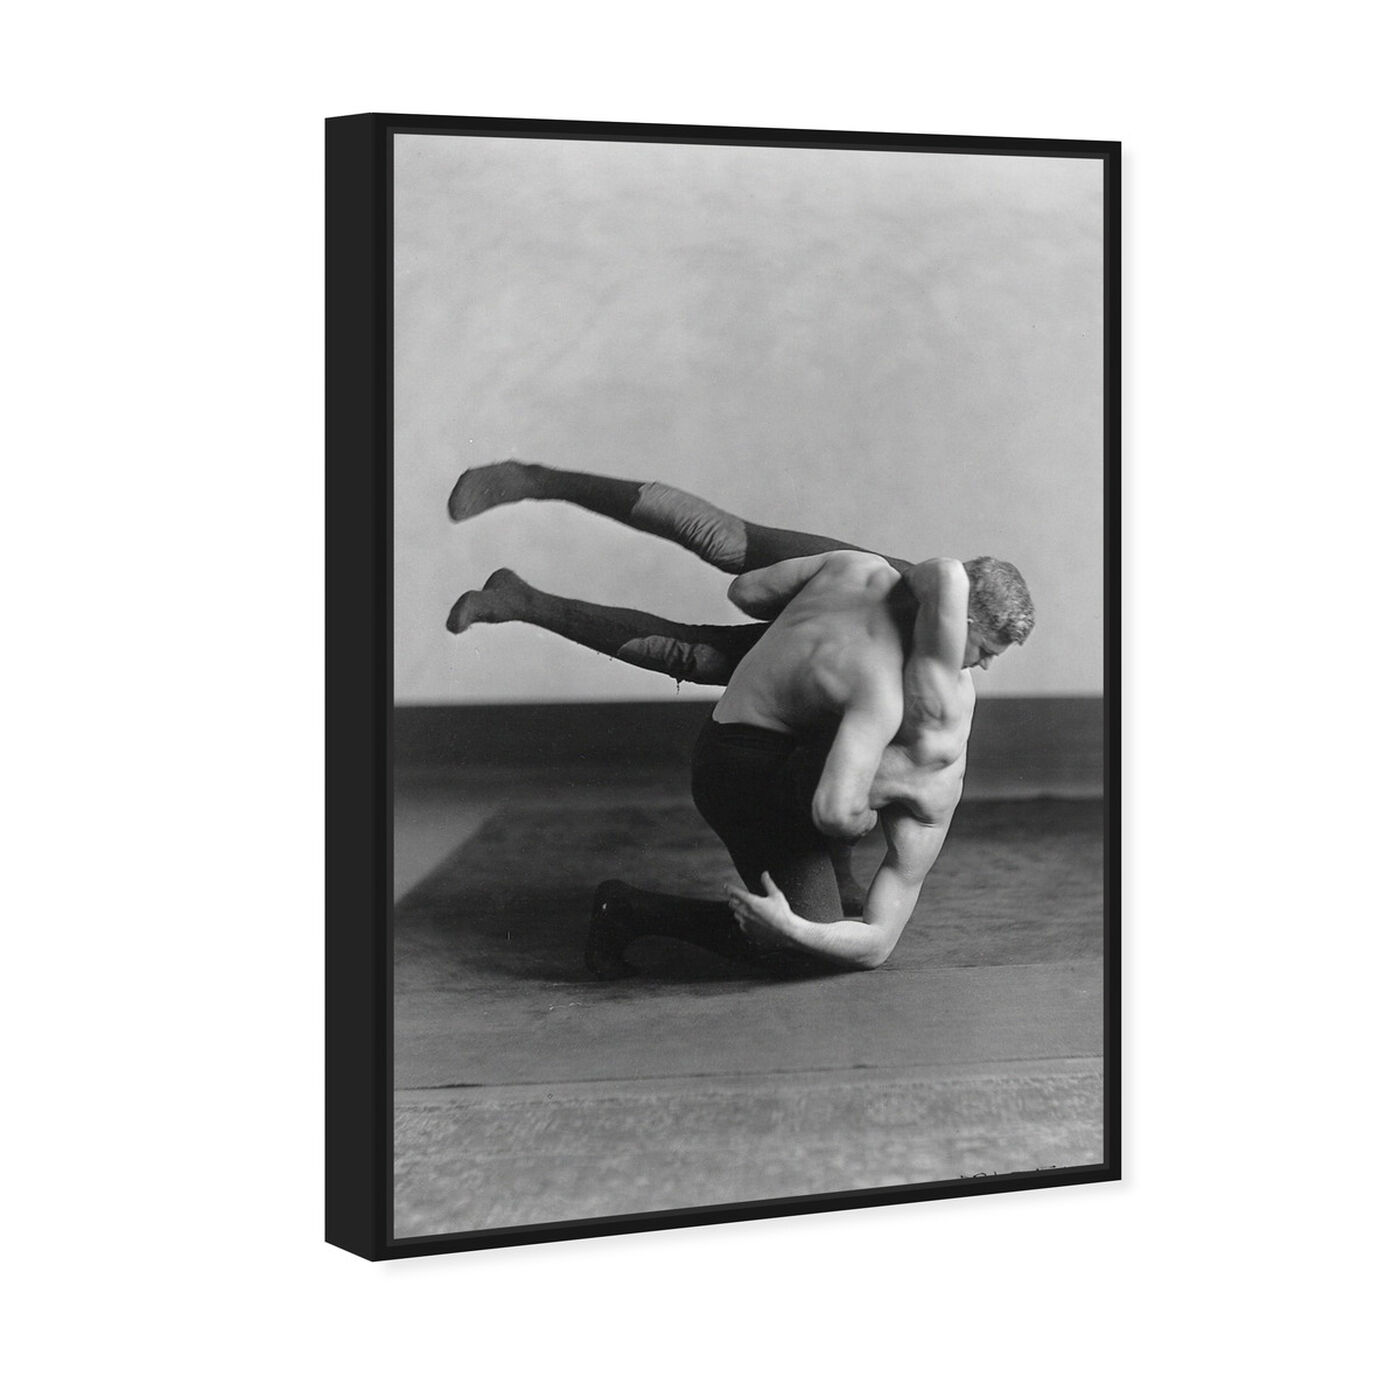 Angled view of McGill Wrestling - The Art Cabinet featuring sports and teams and boxing art.